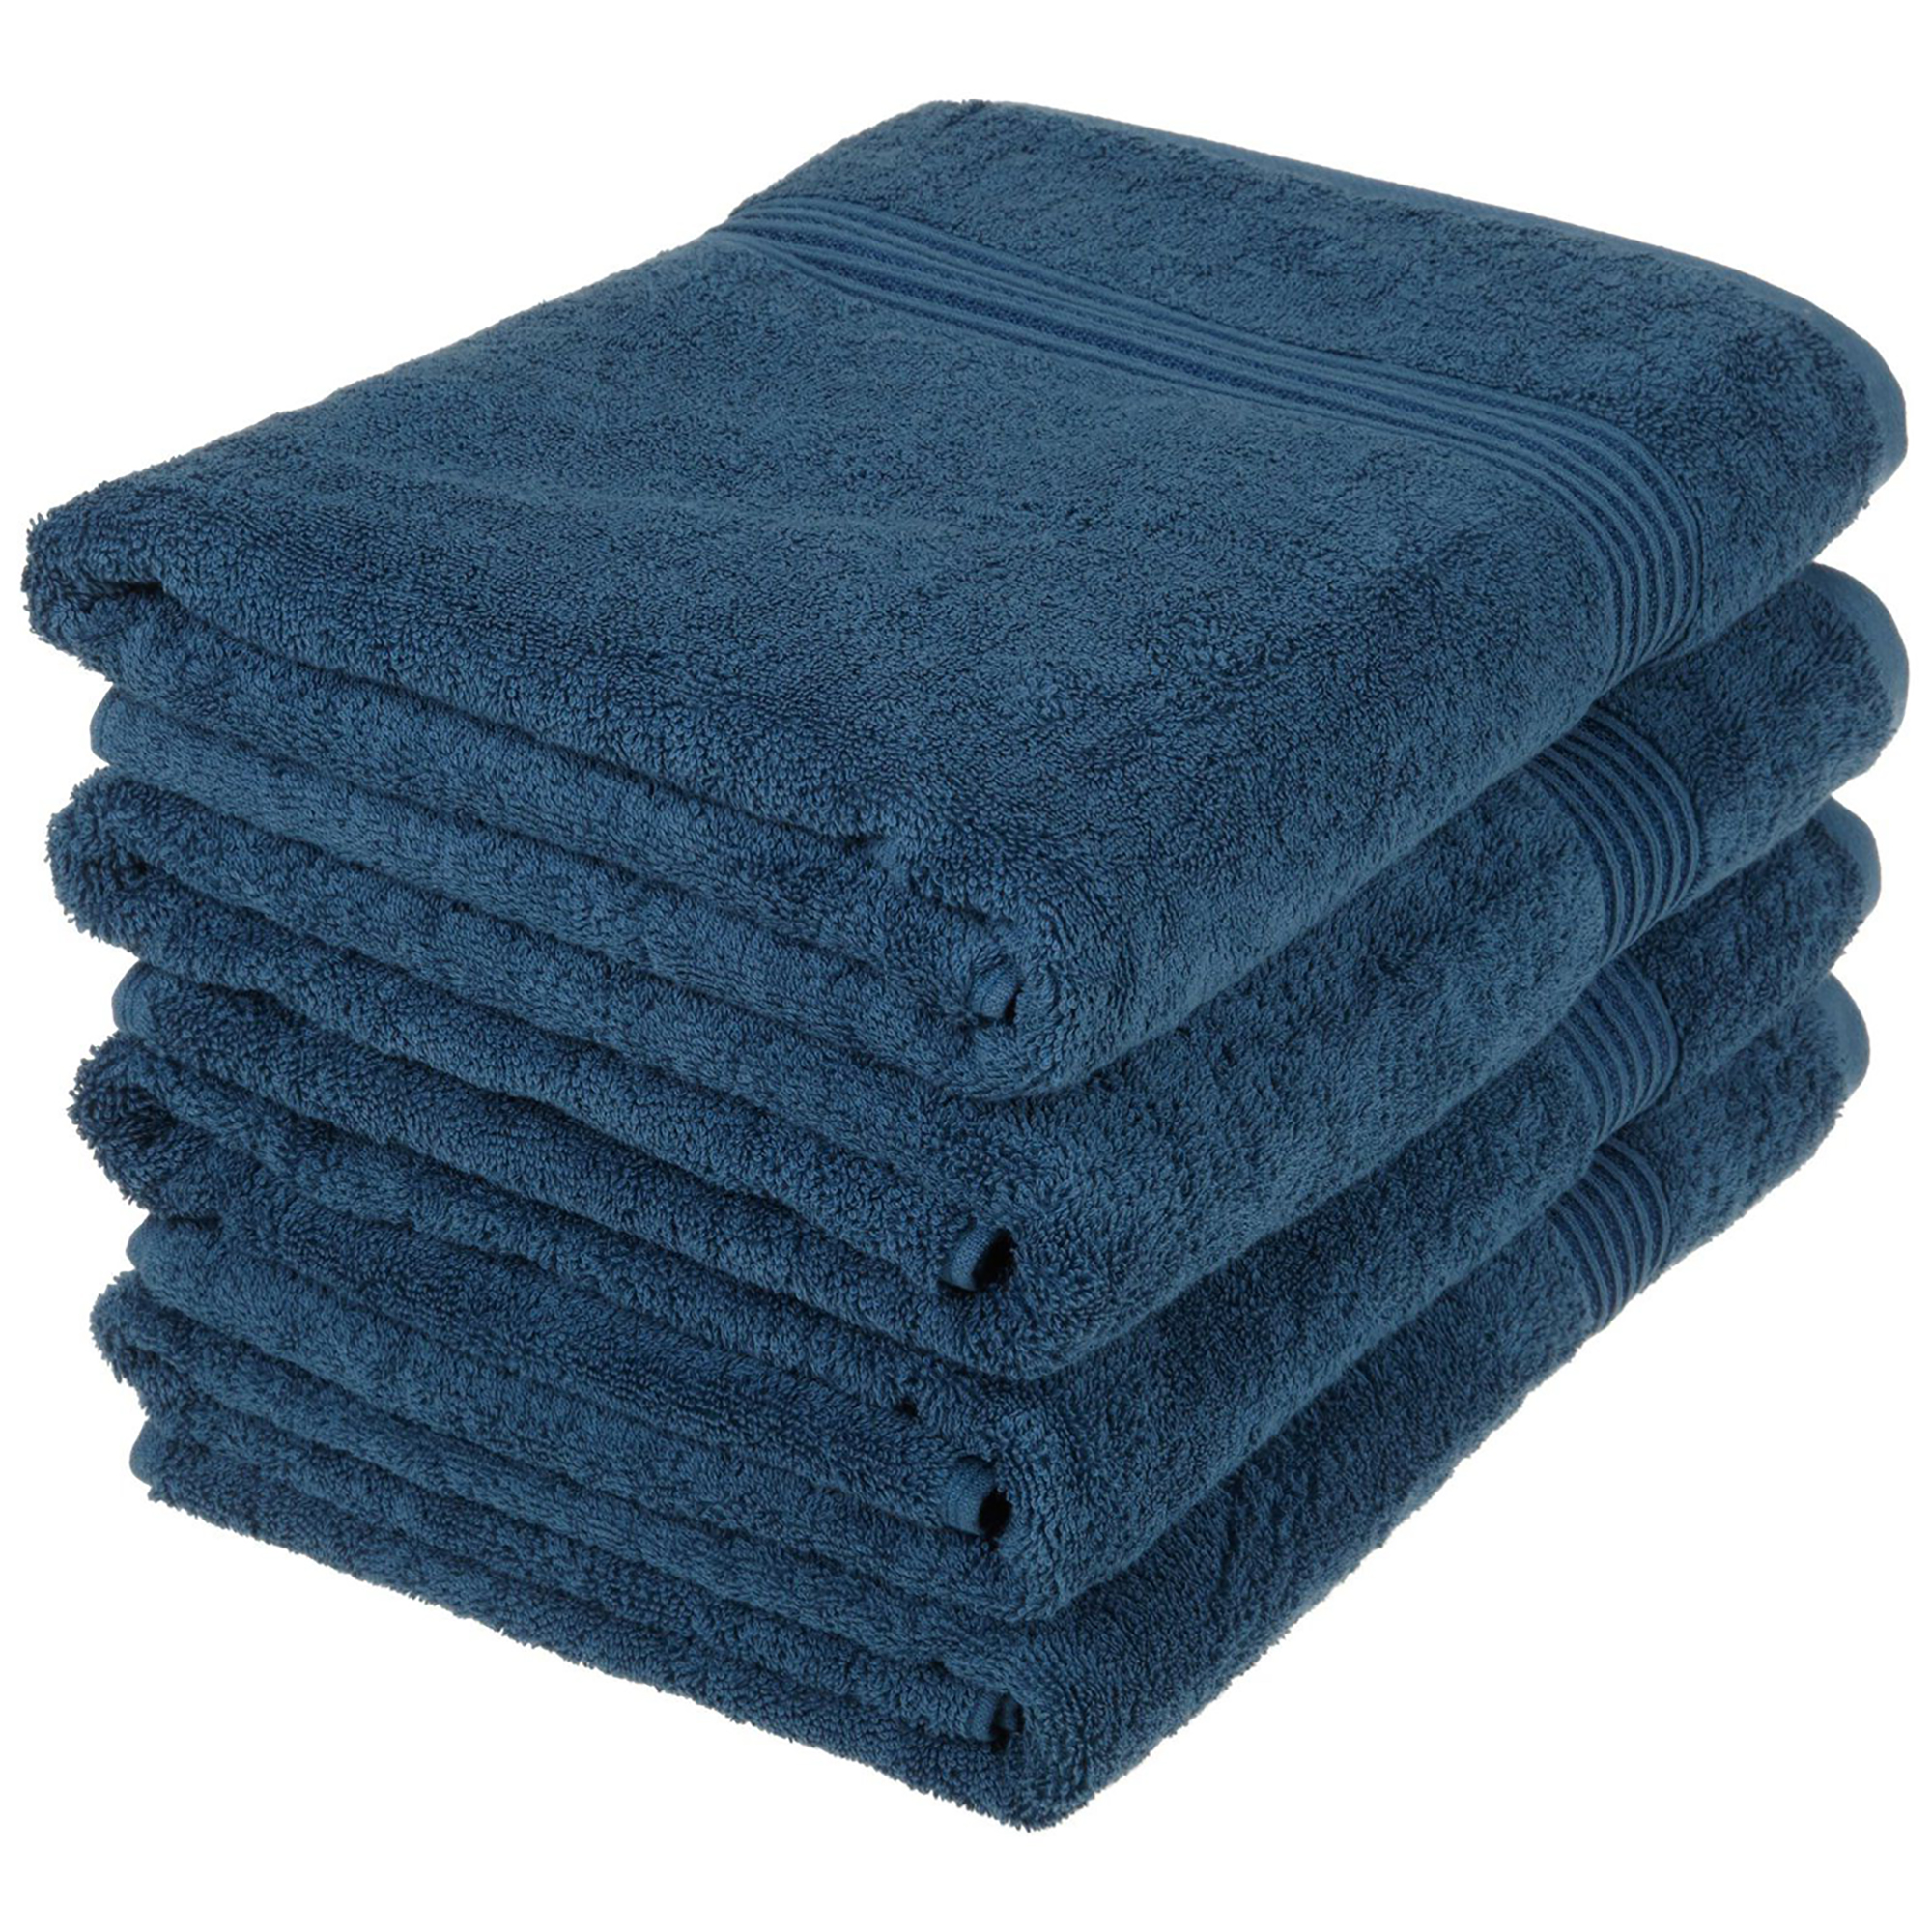 Superior 600GSM Egyptian Quality Cotton 4-Piece Bath Towel Set